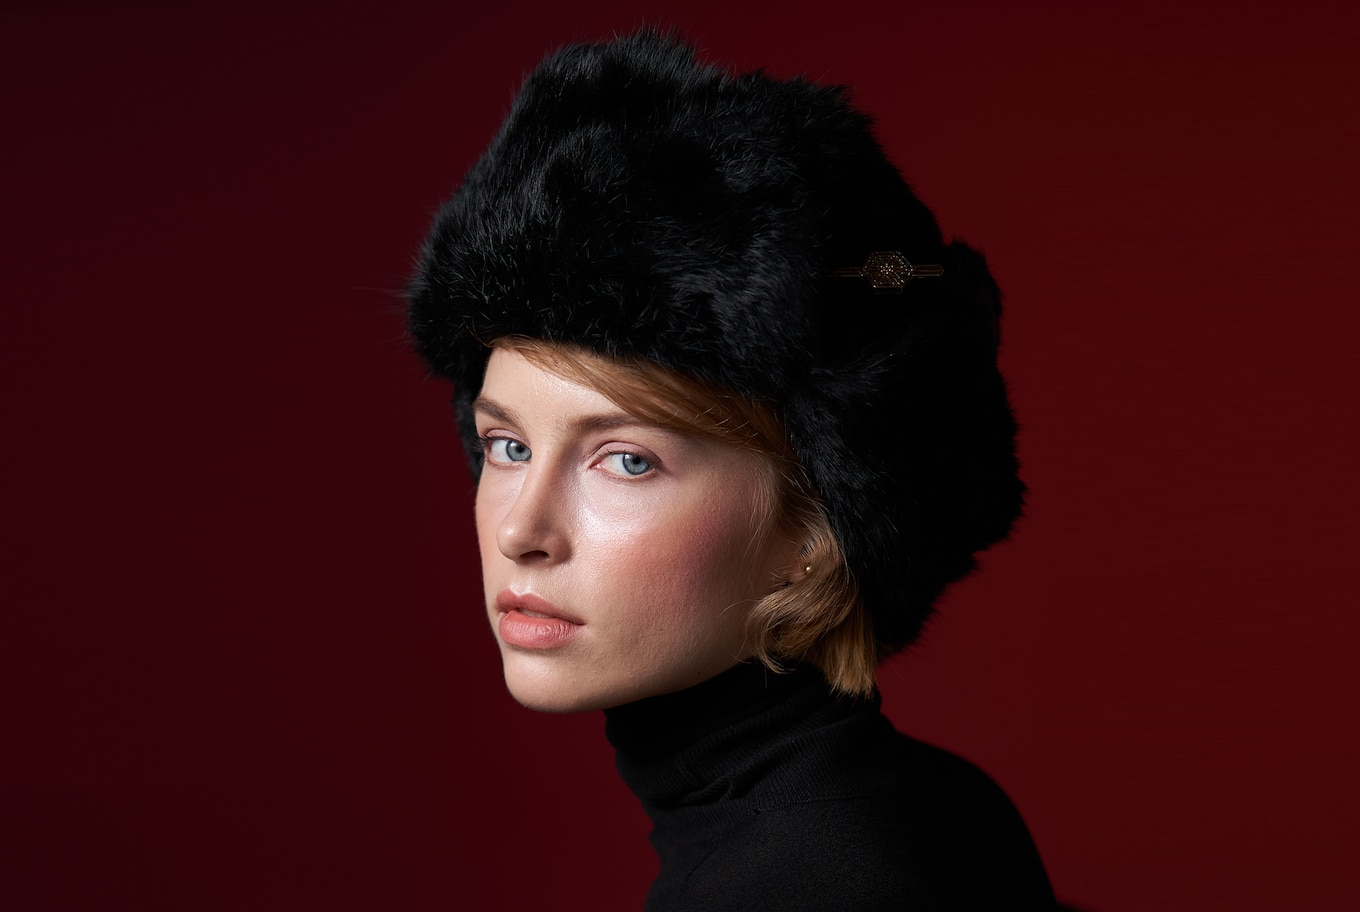 portrait-russian-girl-in-black-alpha-7RIII